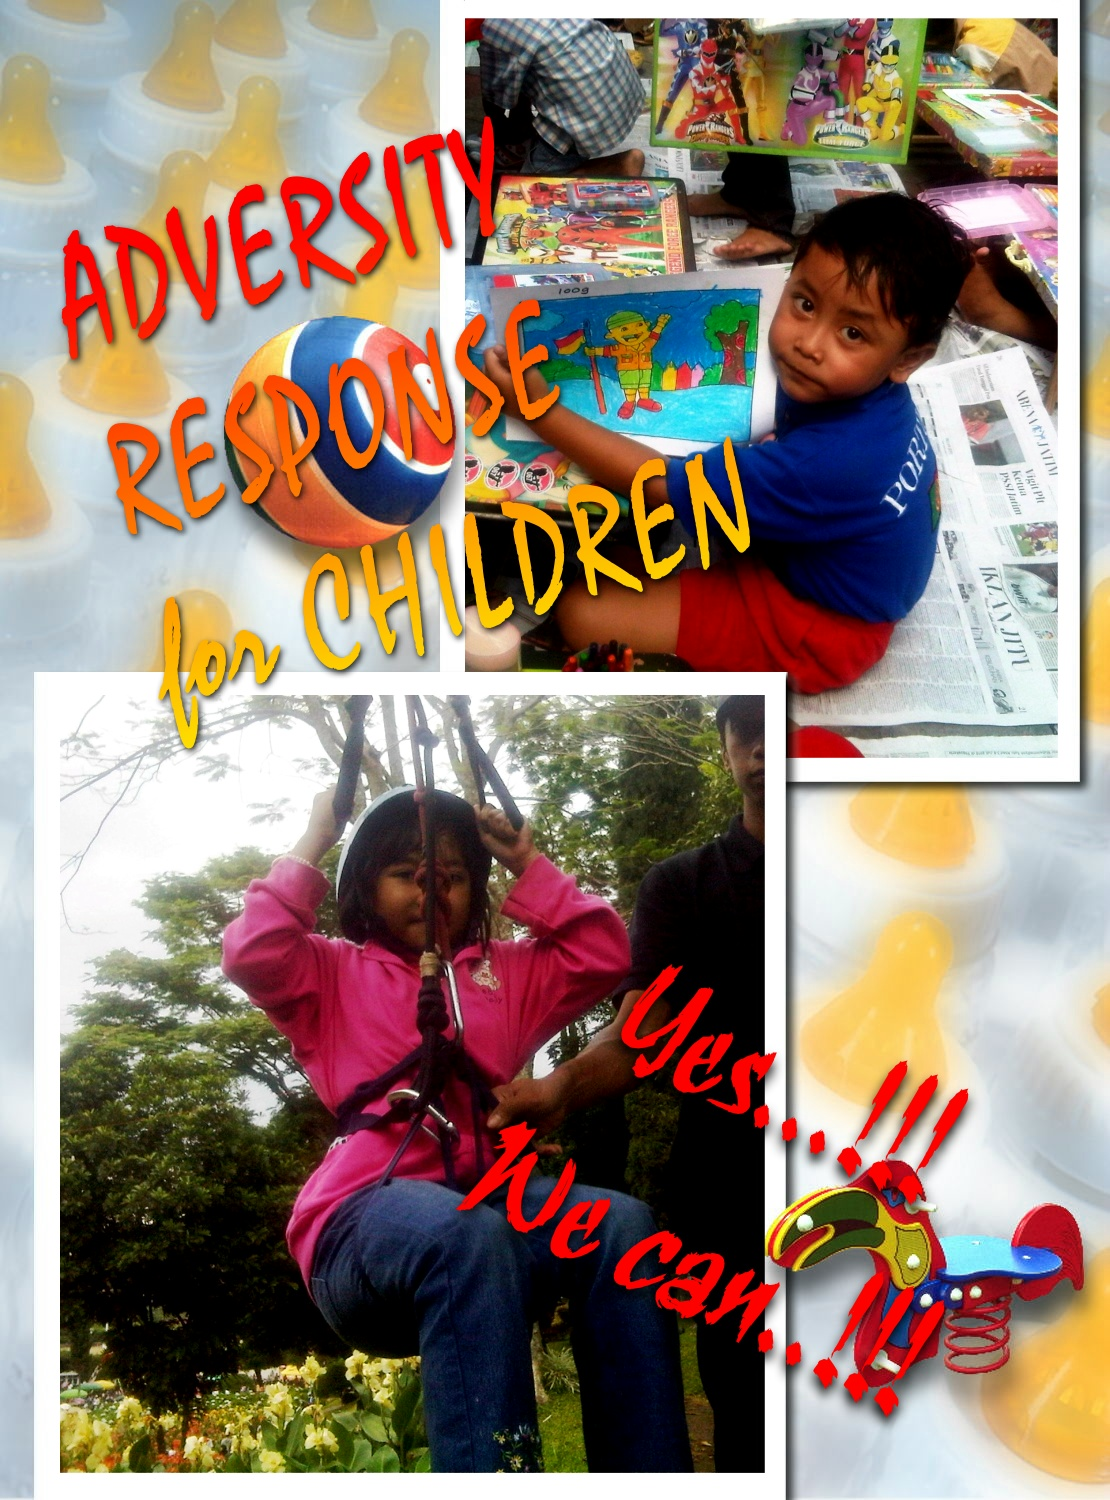 Adversity Response for Children (ARC)